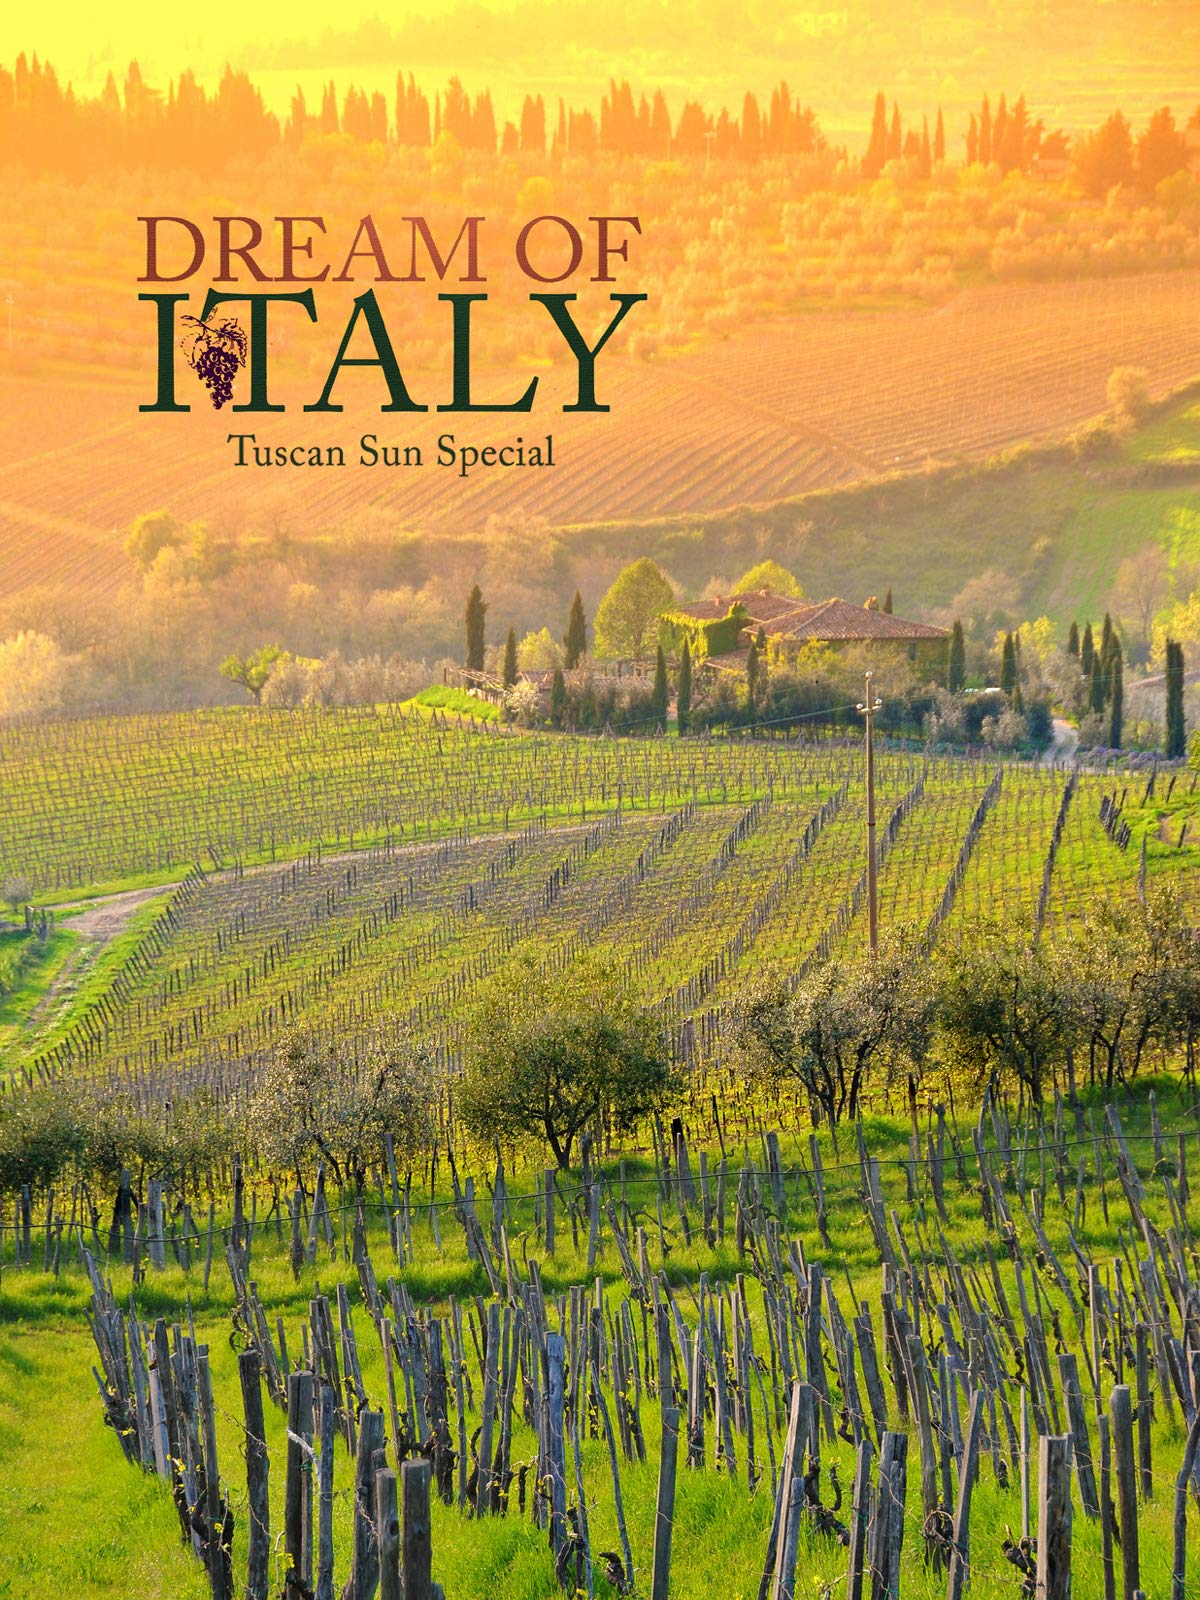 Dream of Italy: Tuscan Sun Special